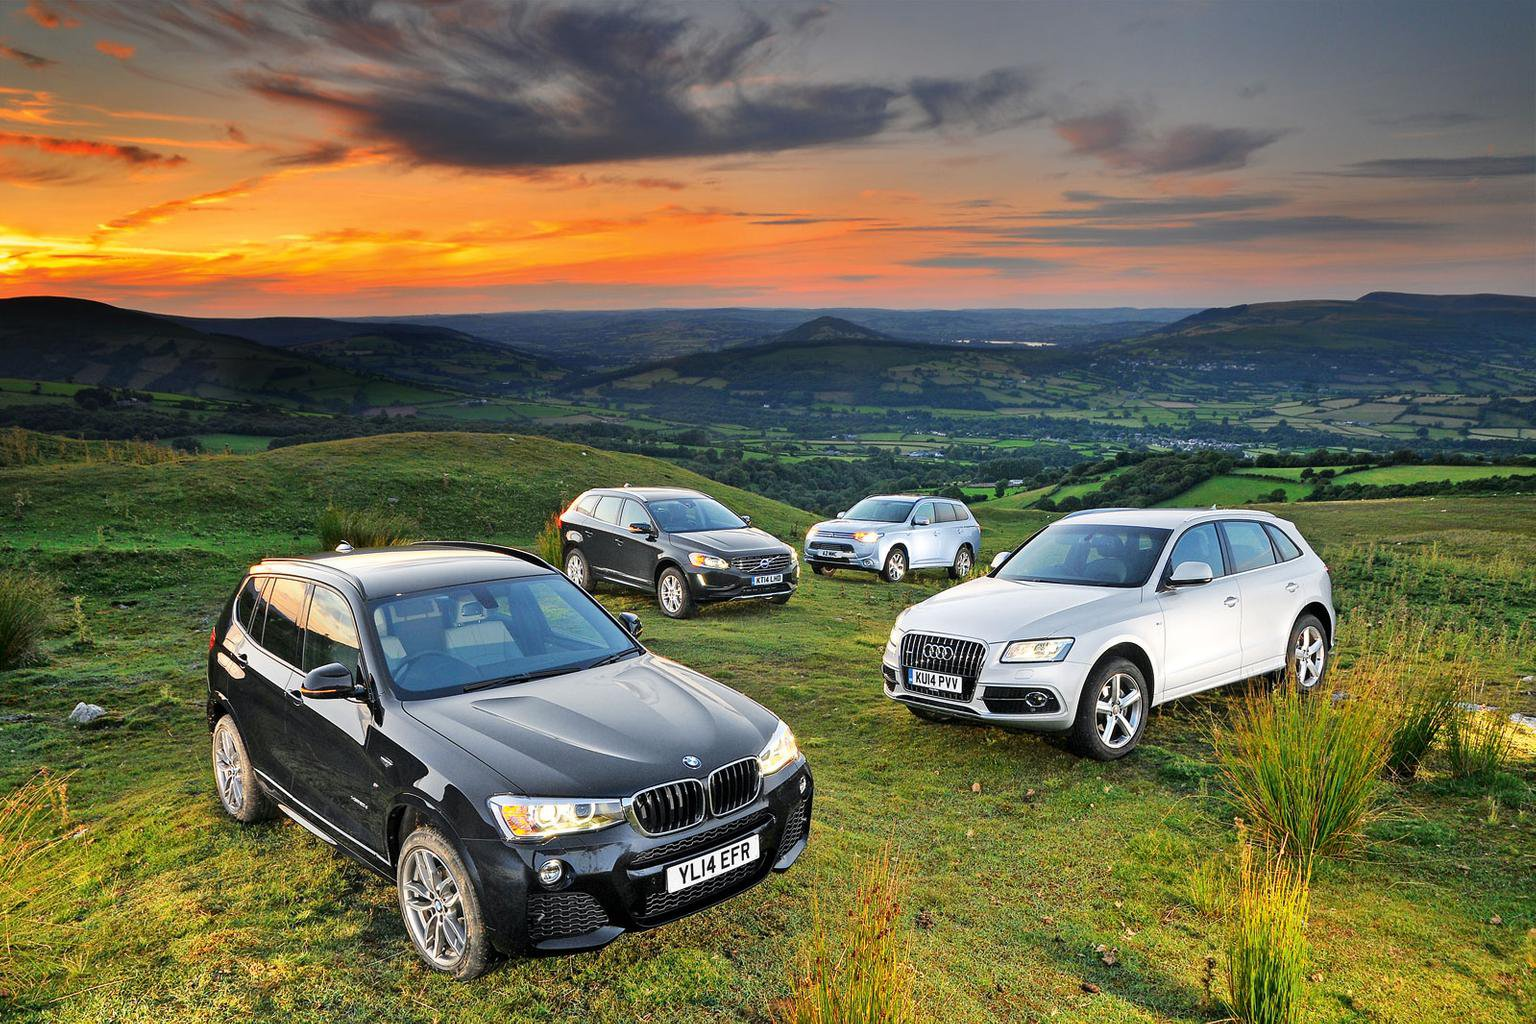 Bmw X3 Vs Audi Q5 Vs Mitsubishi Outlander Vs Volvo Xc60 What Car